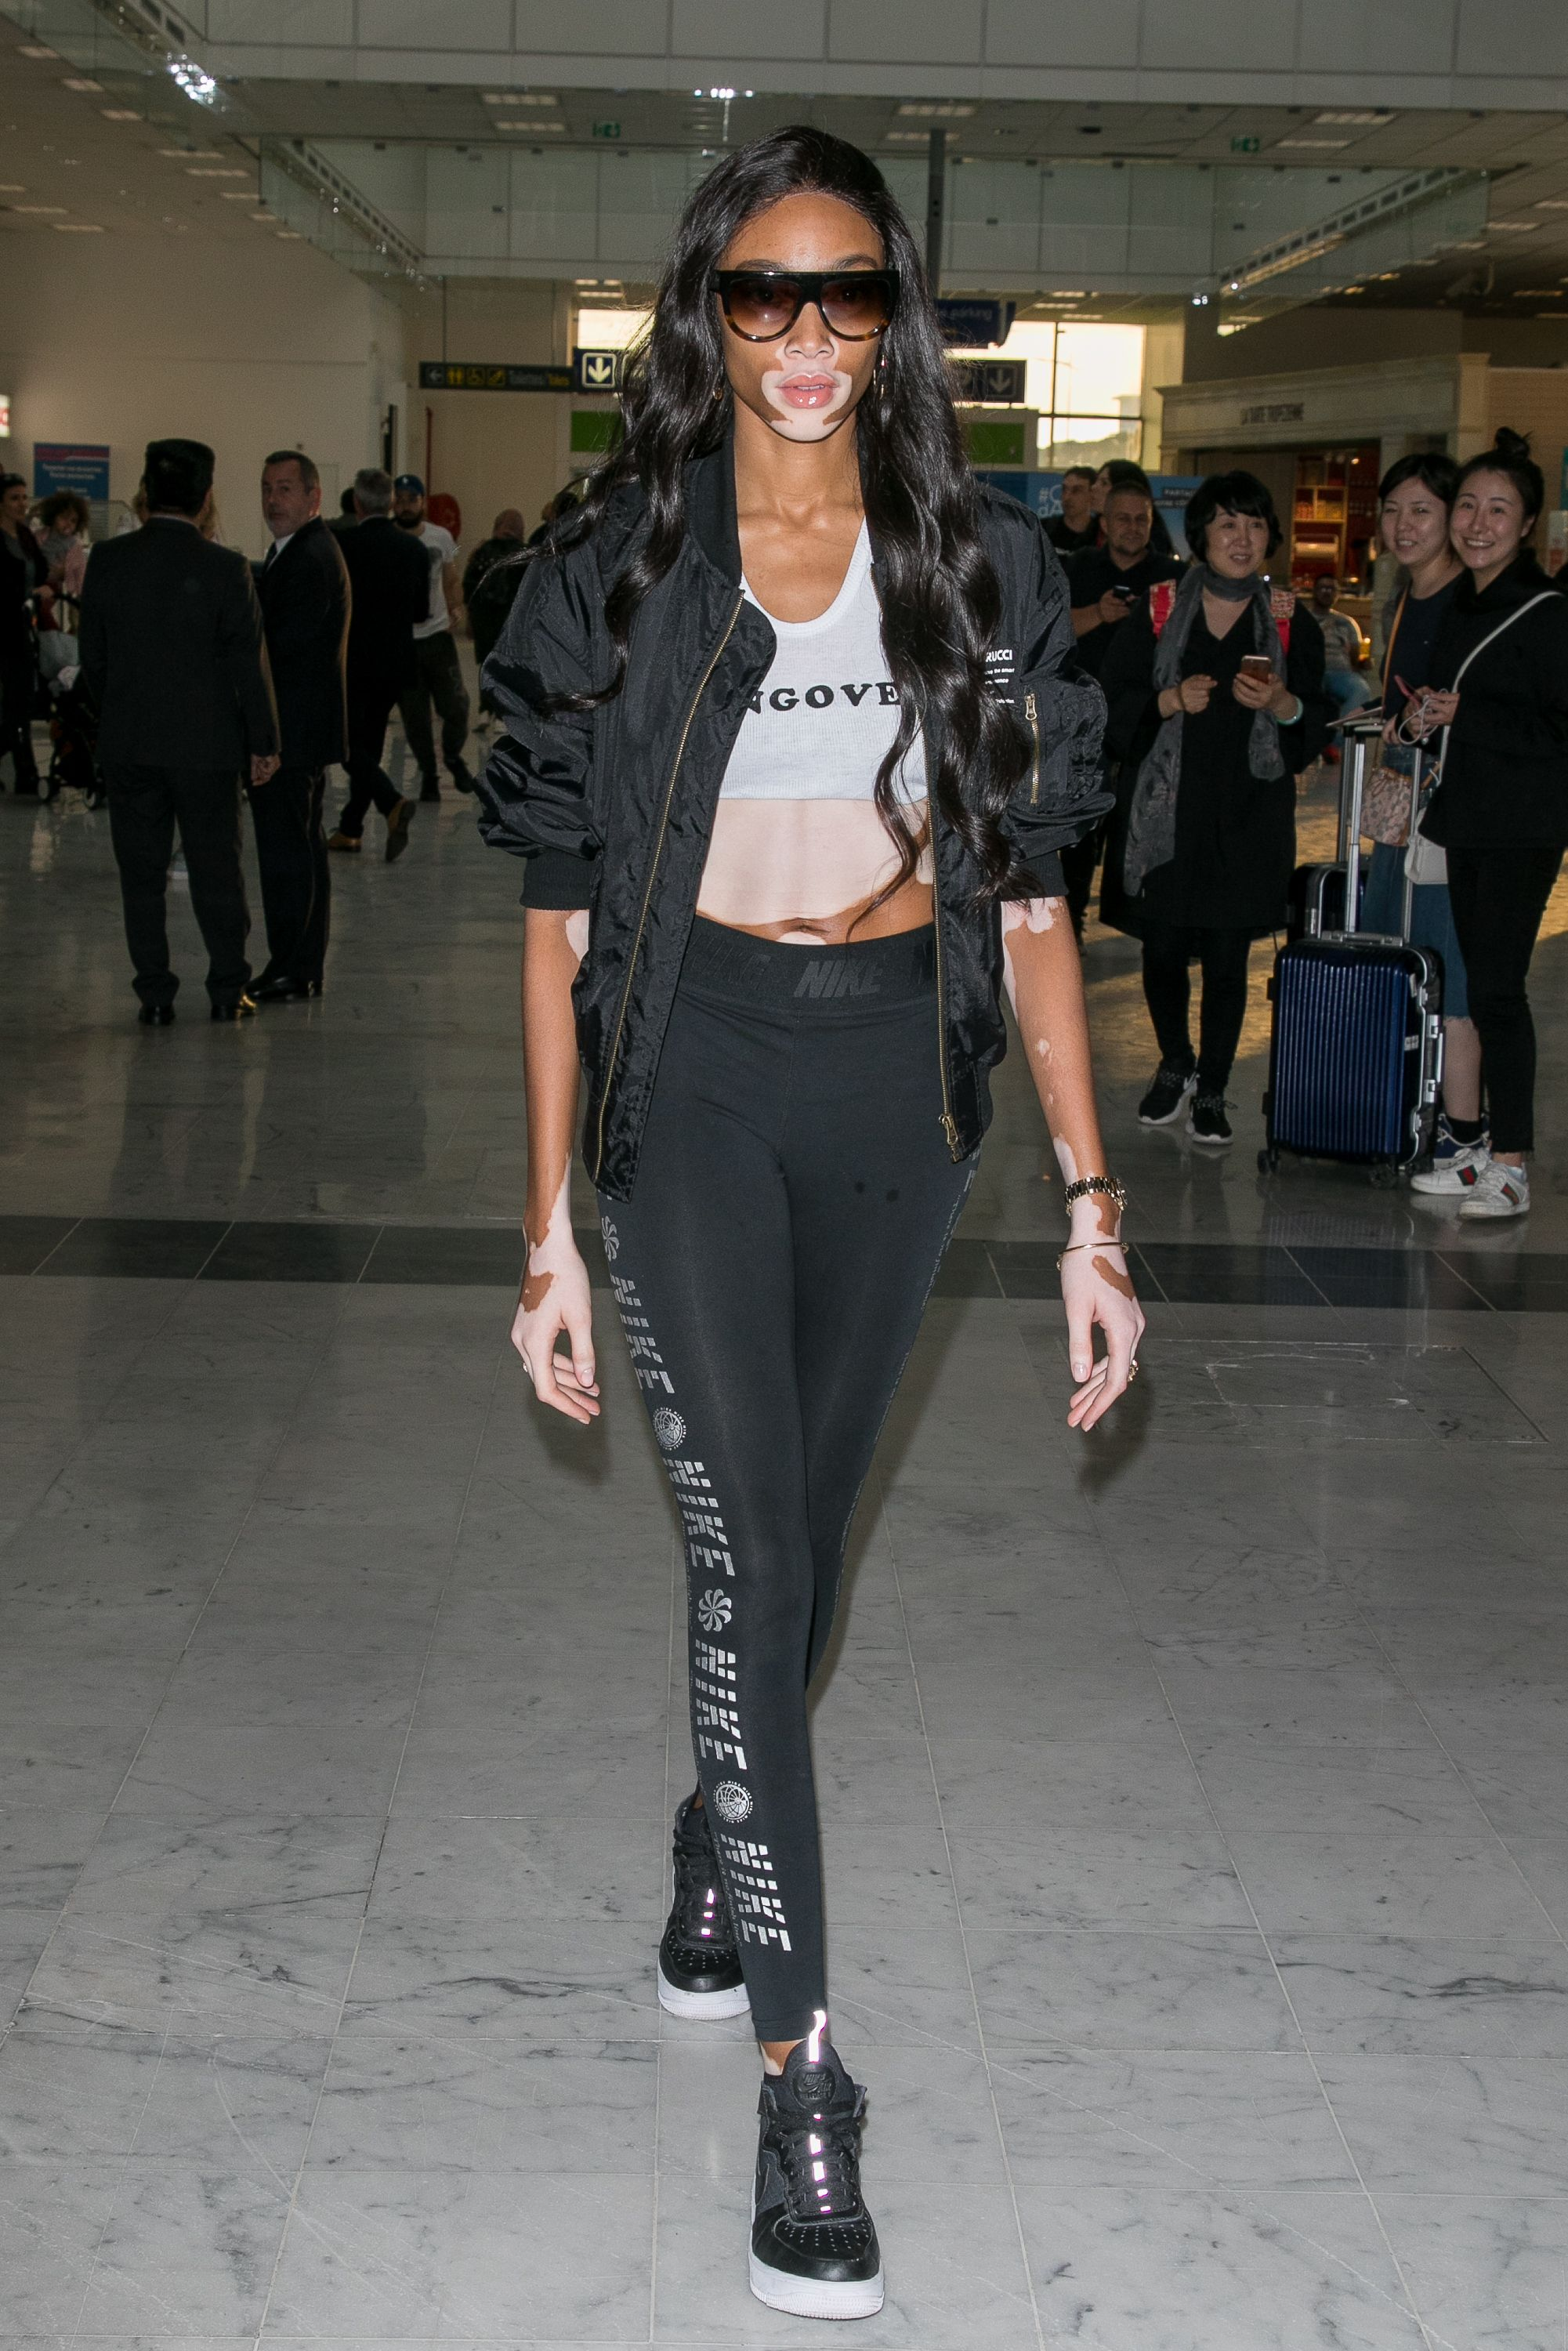 43 Fashionable Times Celebrities Killed the Airport StyleGame